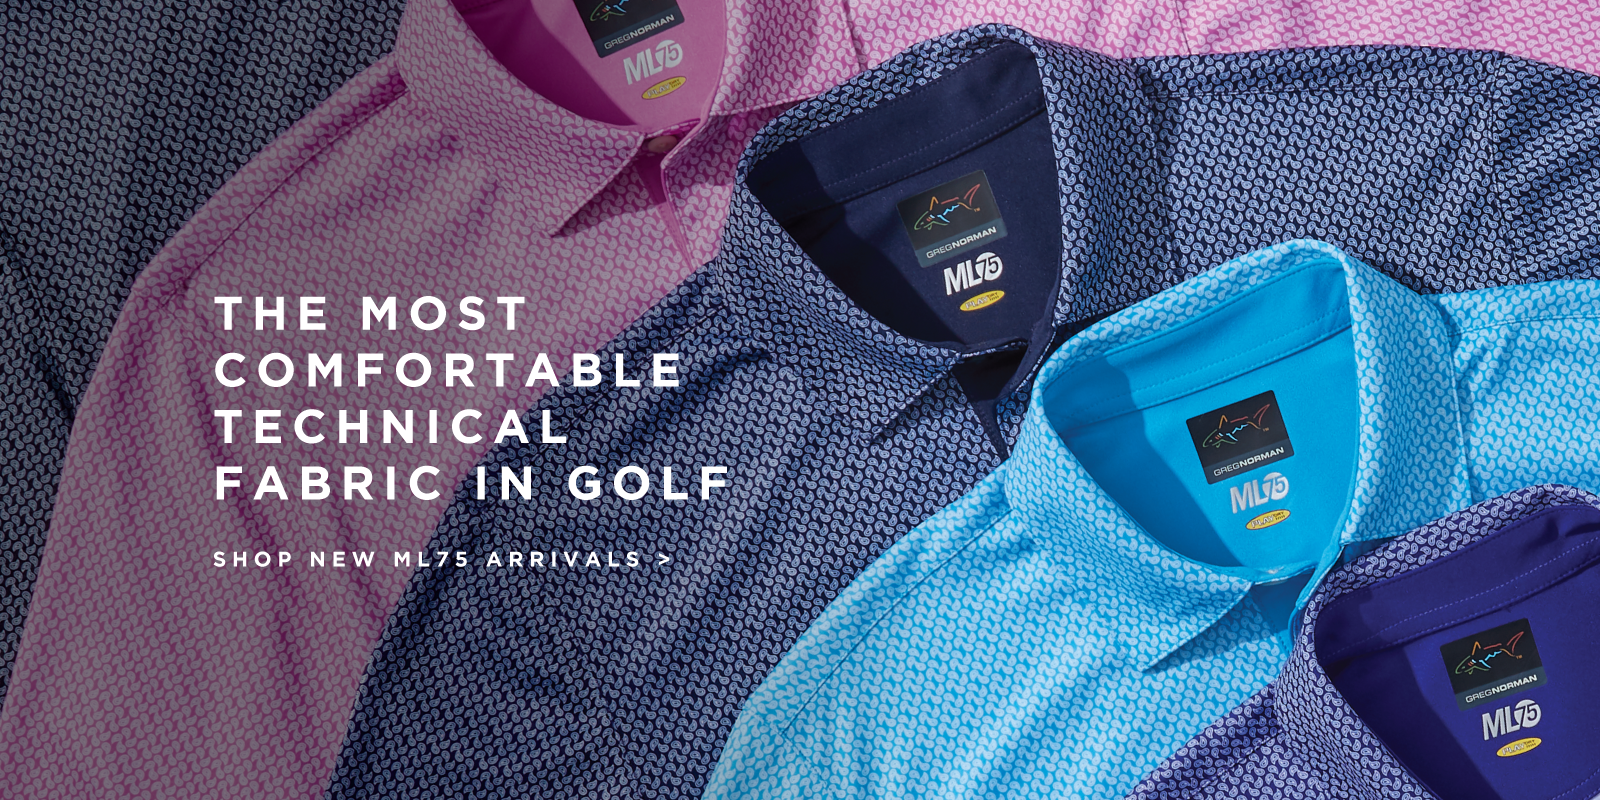 The most comfortable technical fabric in golf Shop new ml75 arrivals